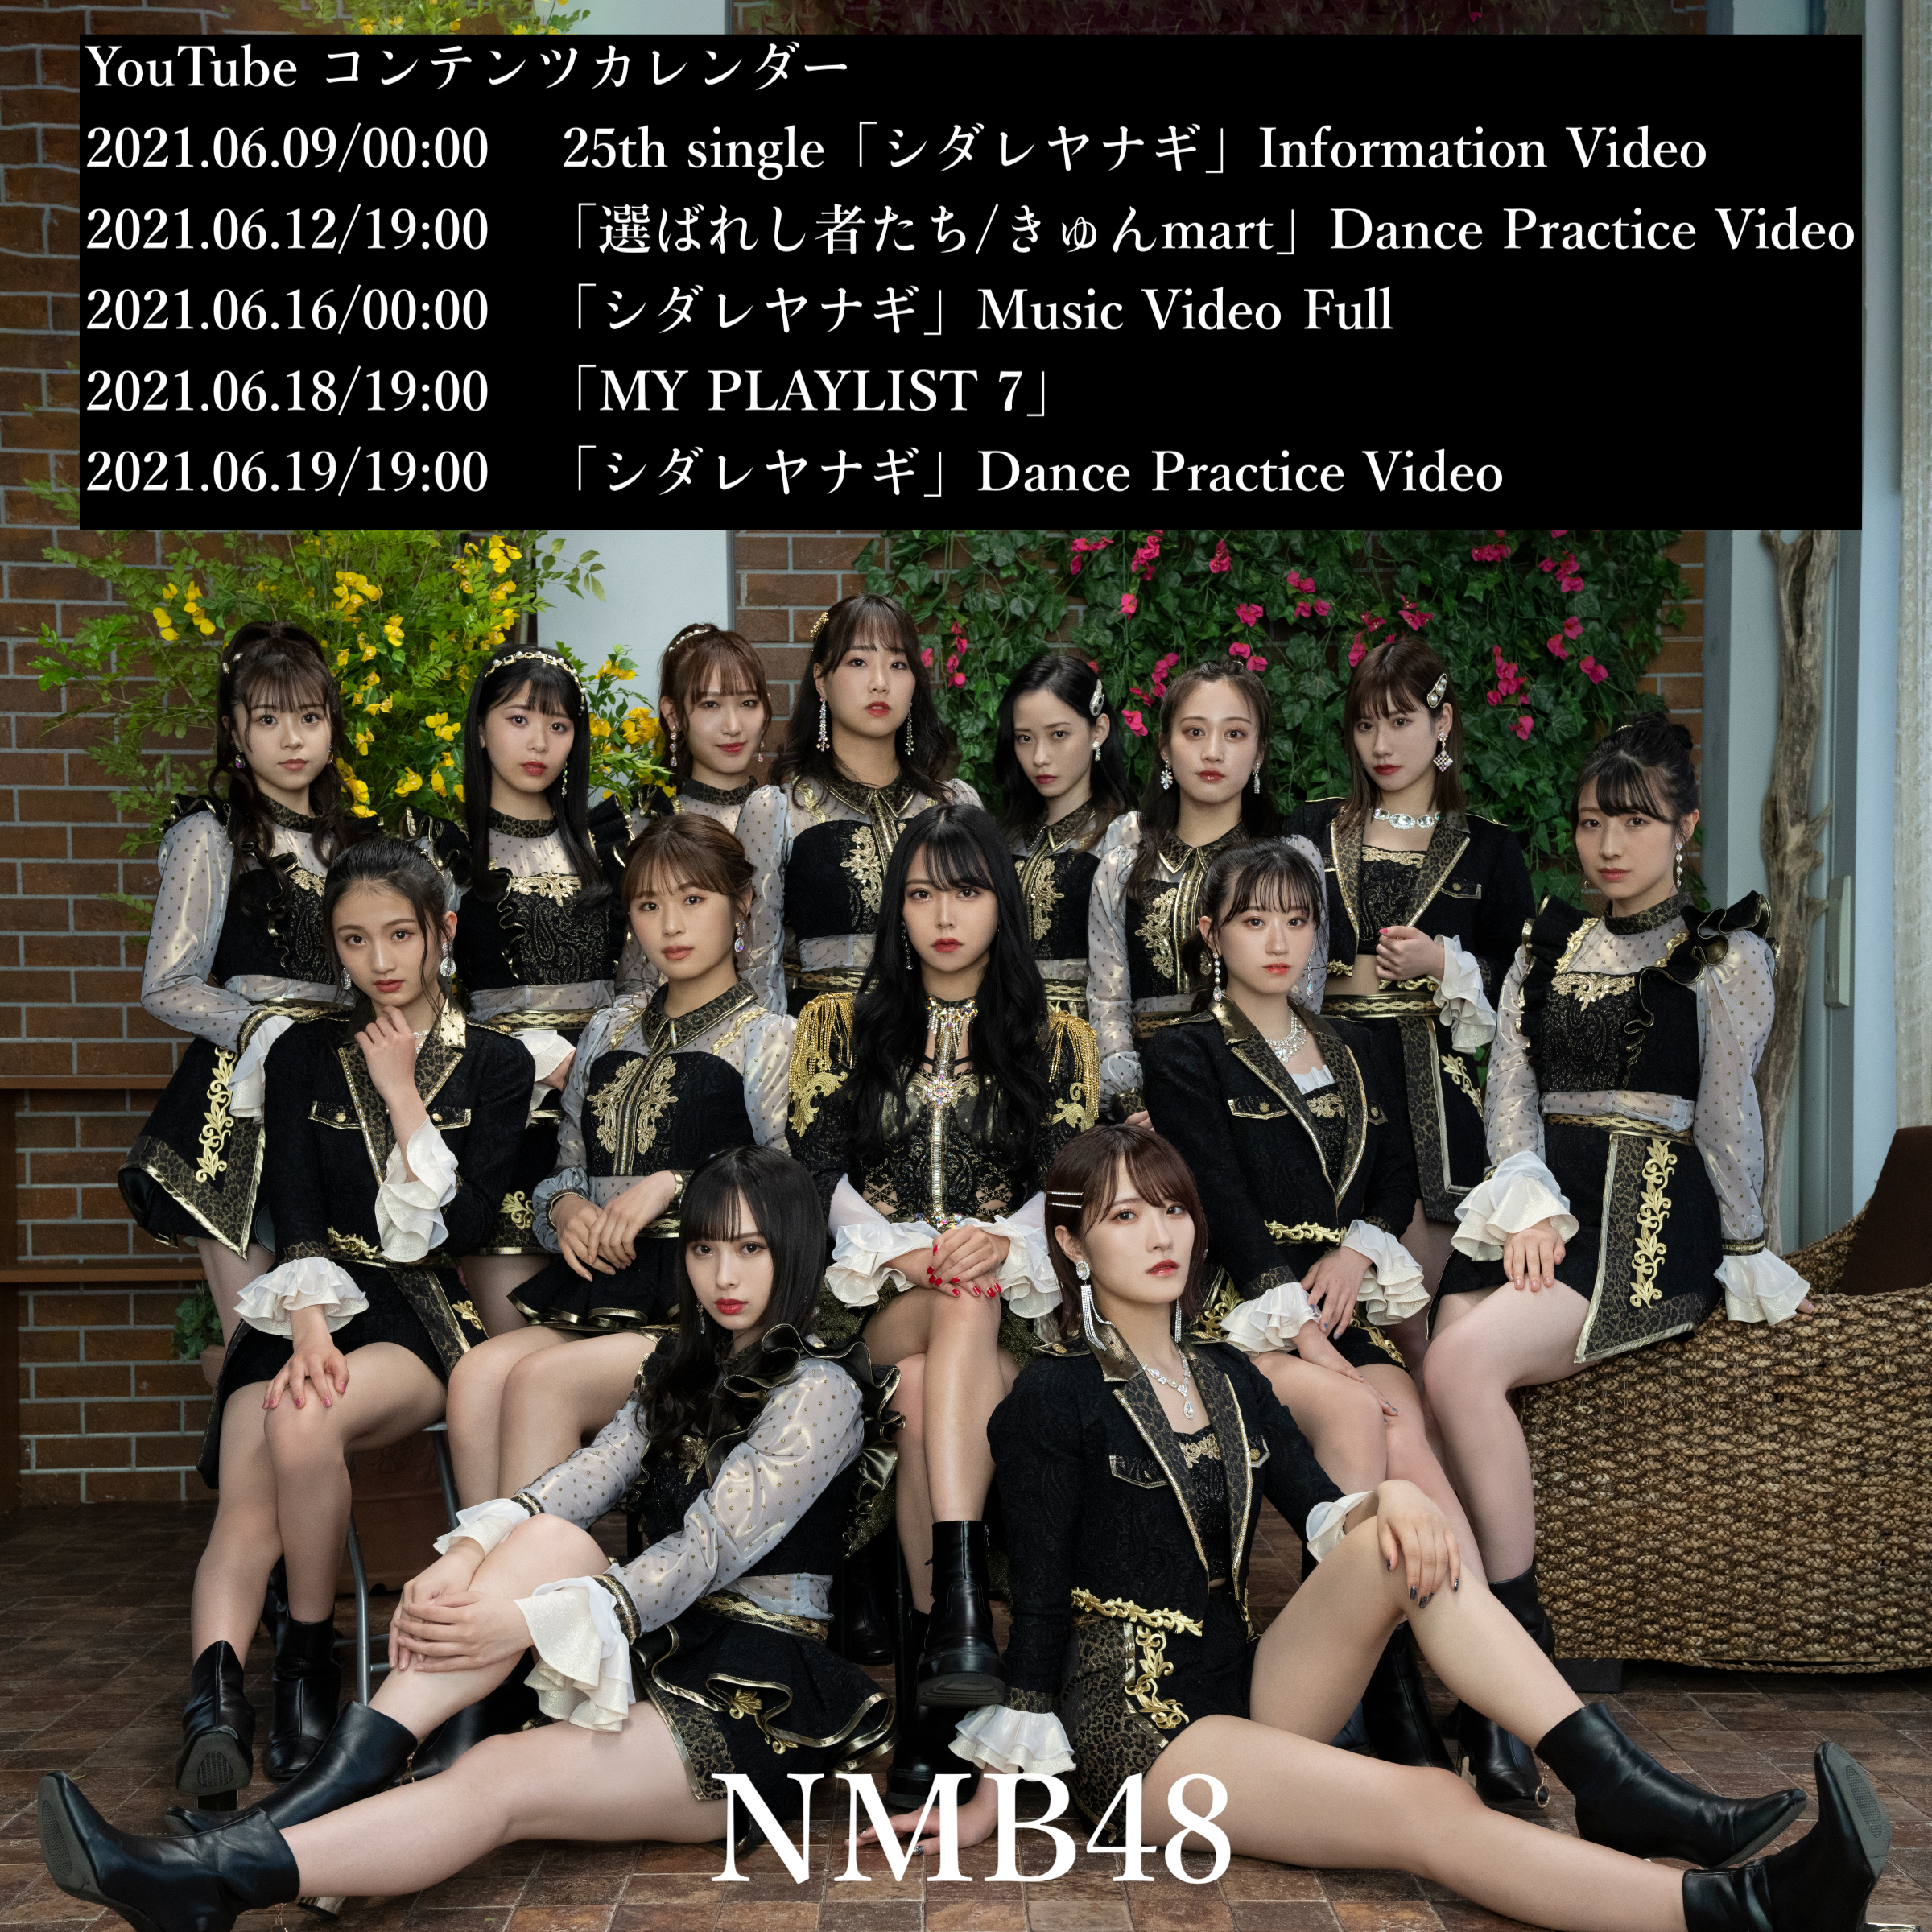 【NMB48】6月18日のYou Tubeで「MY PLAYLIST 7」が配信